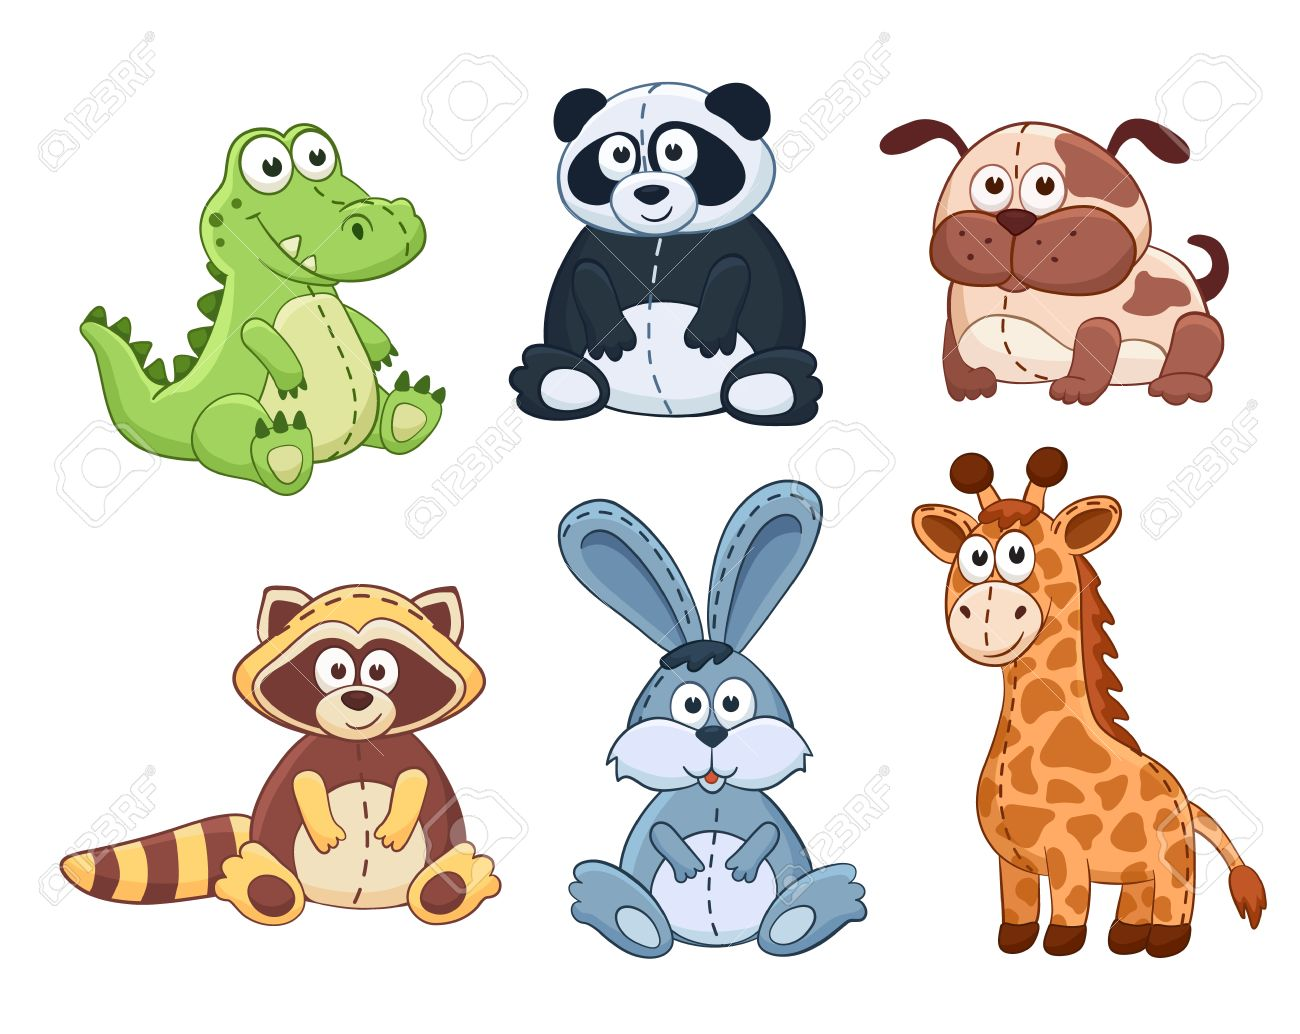 hight resolution of cute cartoon animals isolated on white background stuffed toys set vector illustration of adorable